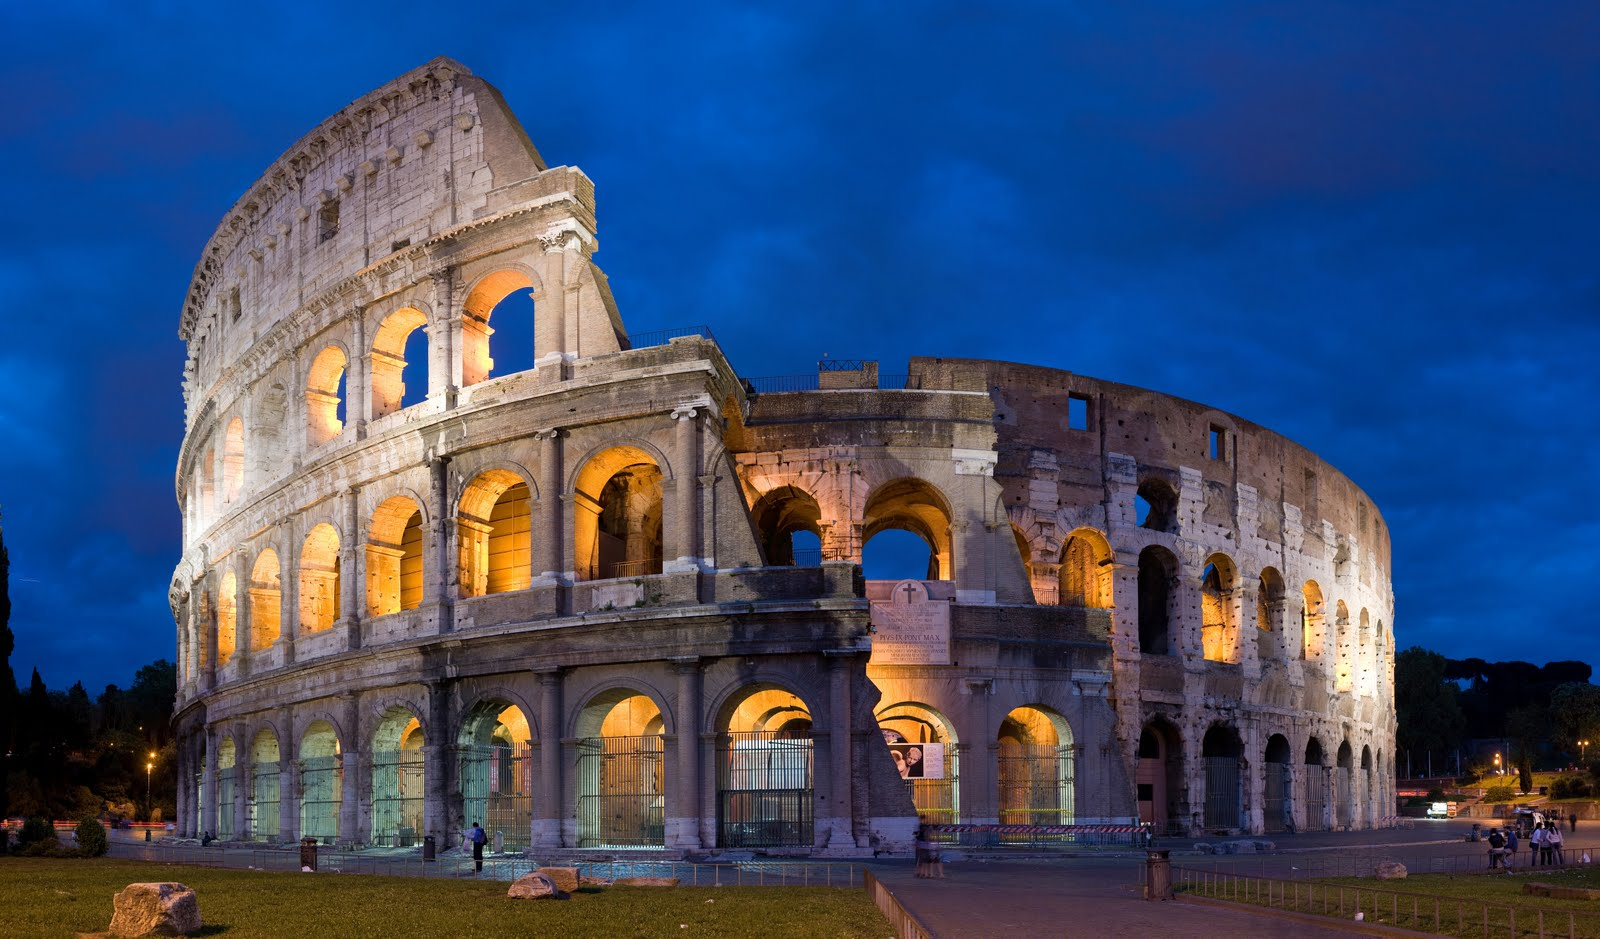 roman architecture rome colosseum italy history buildings romans ancient roma historic built italia considered modern classical